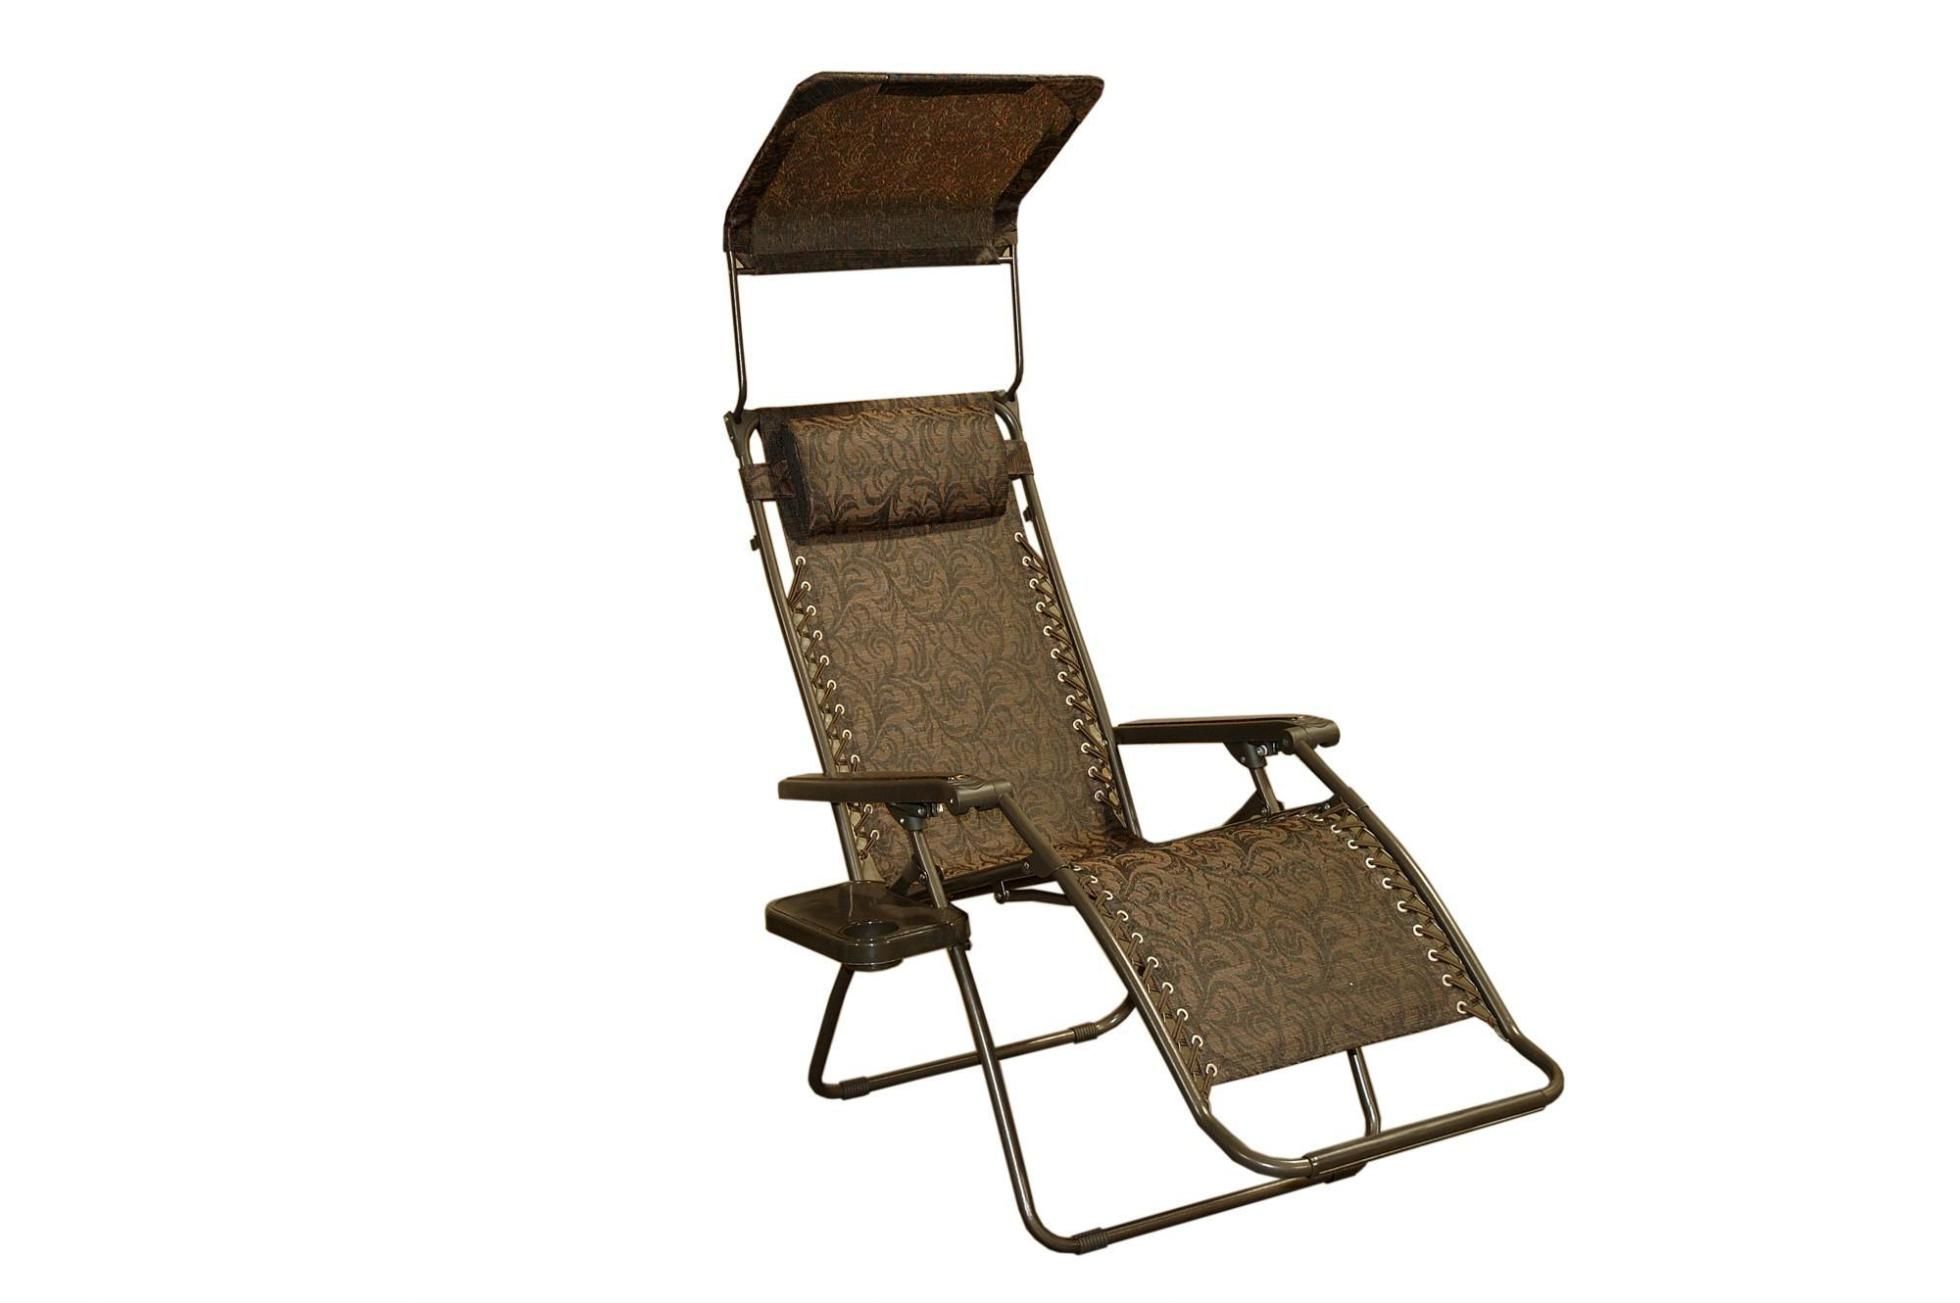 Image of: Zero Gravity Outdoor Lounge Chair